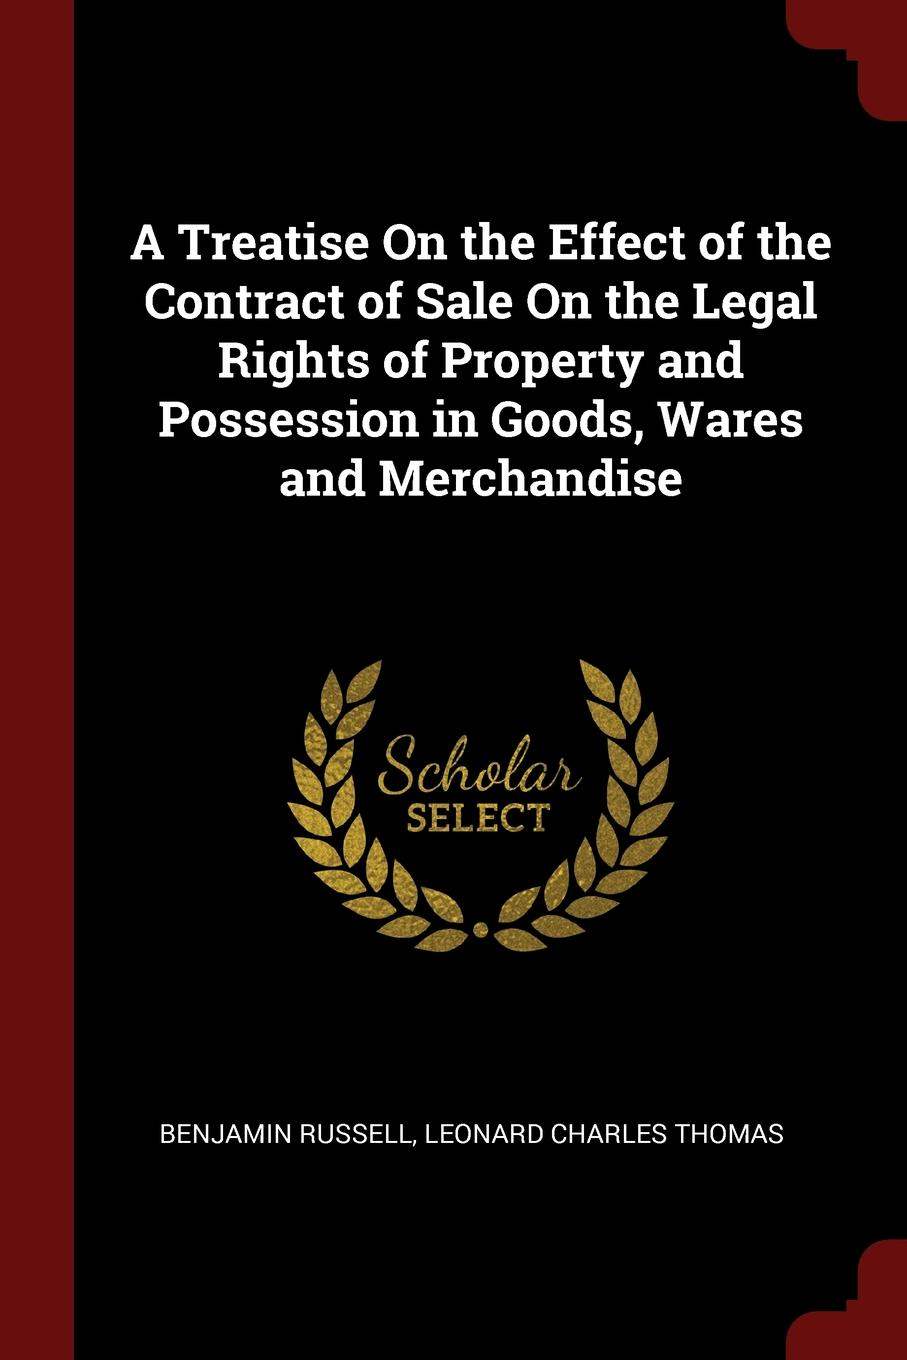 Benjamin Russell, Leonard Charles Thomas A Treatise On the Effect of Contract Sale Legal Rights Property and Possession in Goods, Wares Merchandise